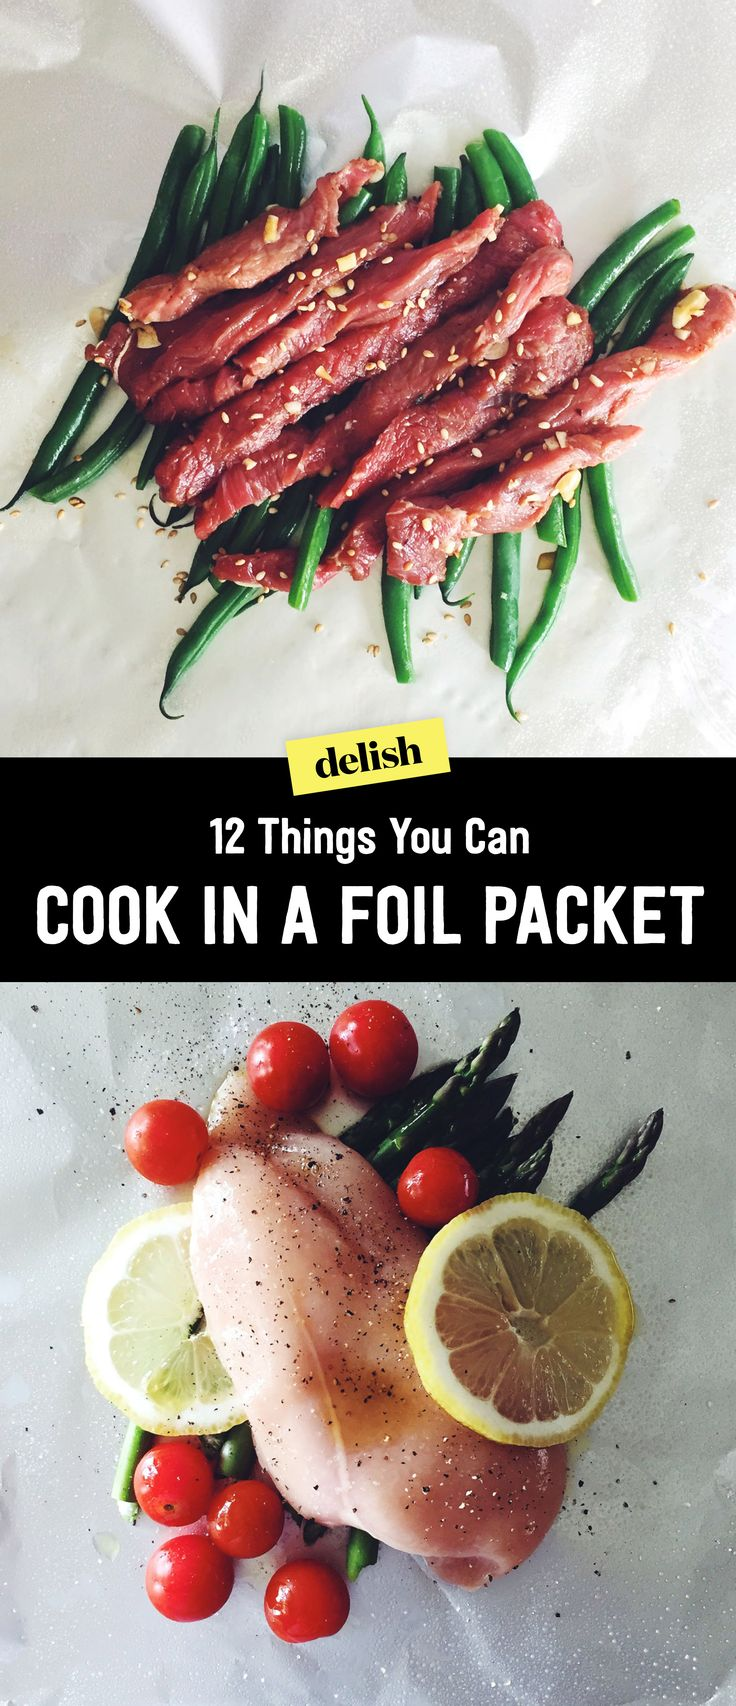 how to cook foil packets on the grill